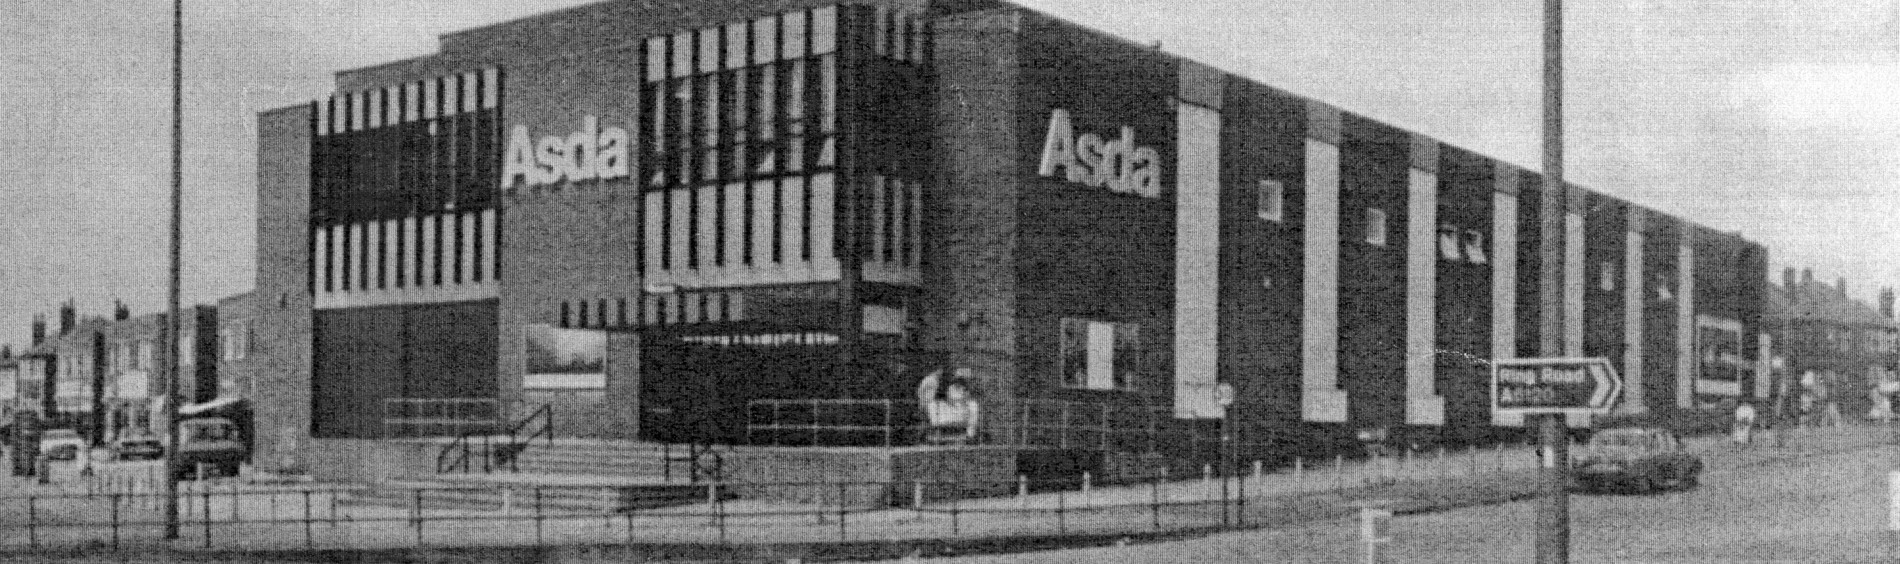 Black and white image of a two story brick building with ASDA logo on side and front